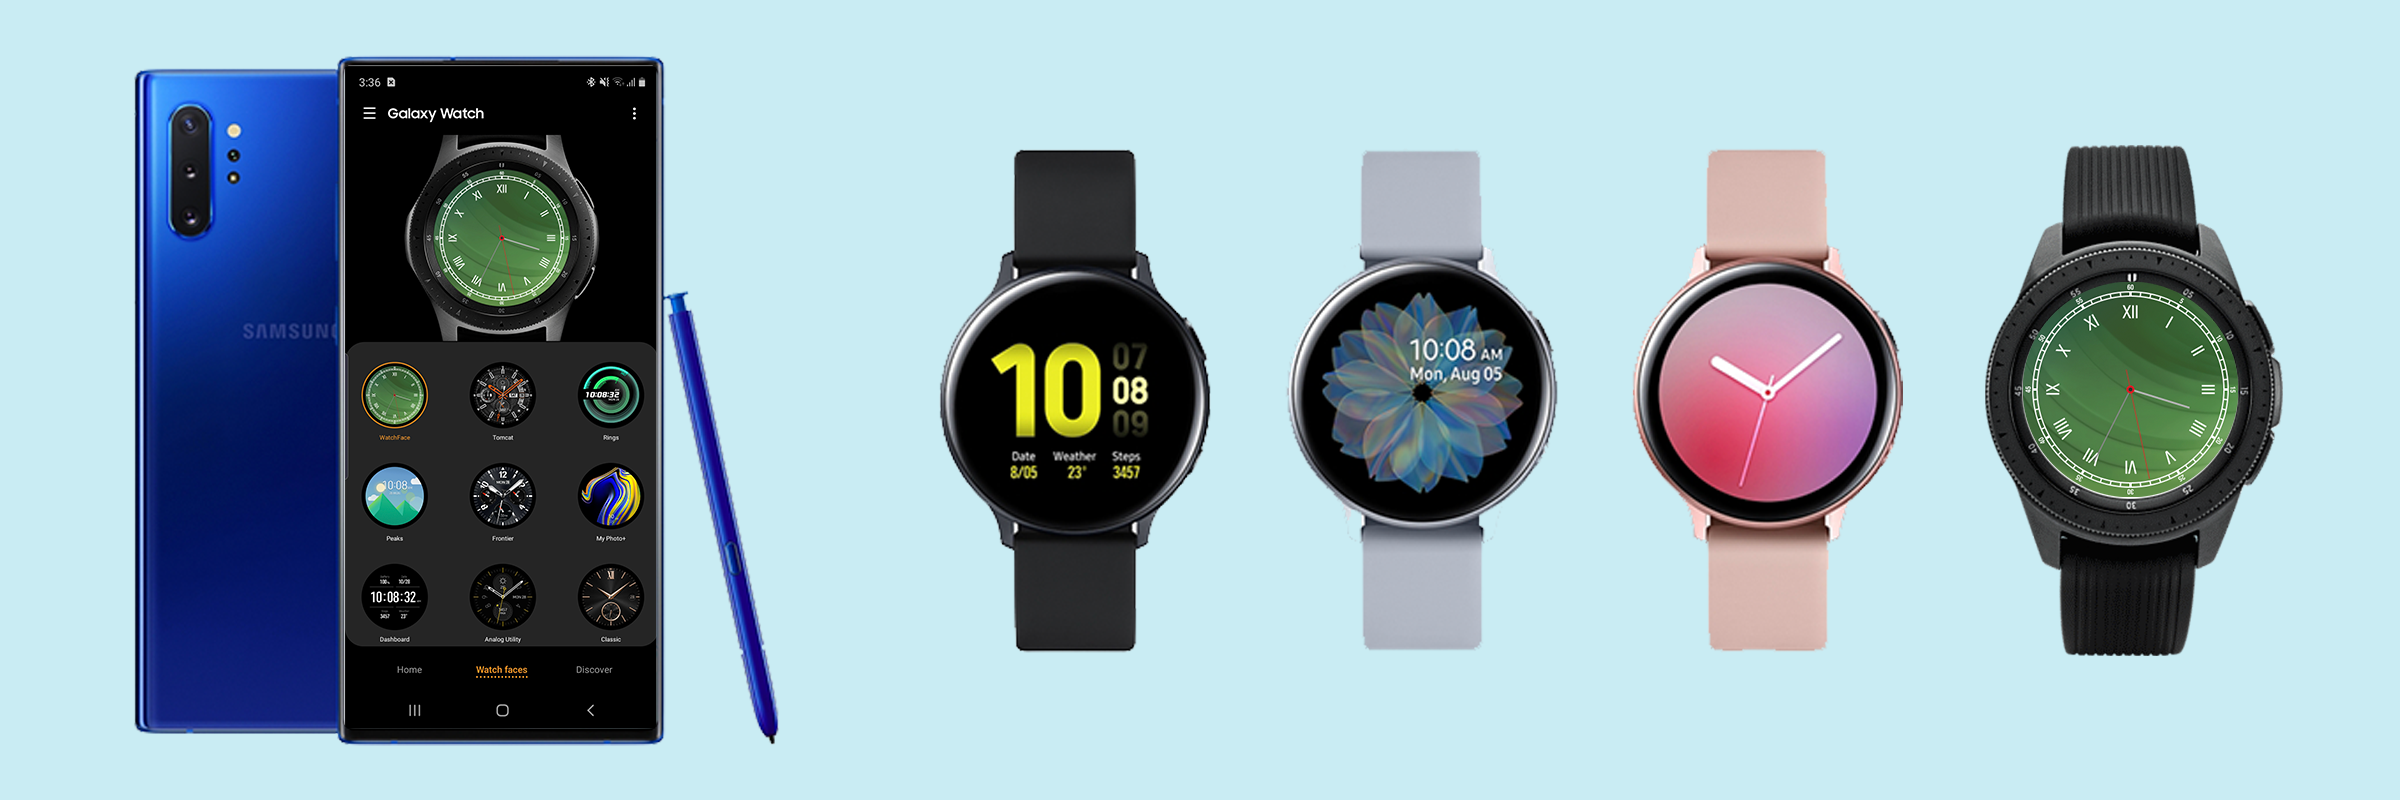 Getting Started with Watch Face Development Using the Tizen Web API